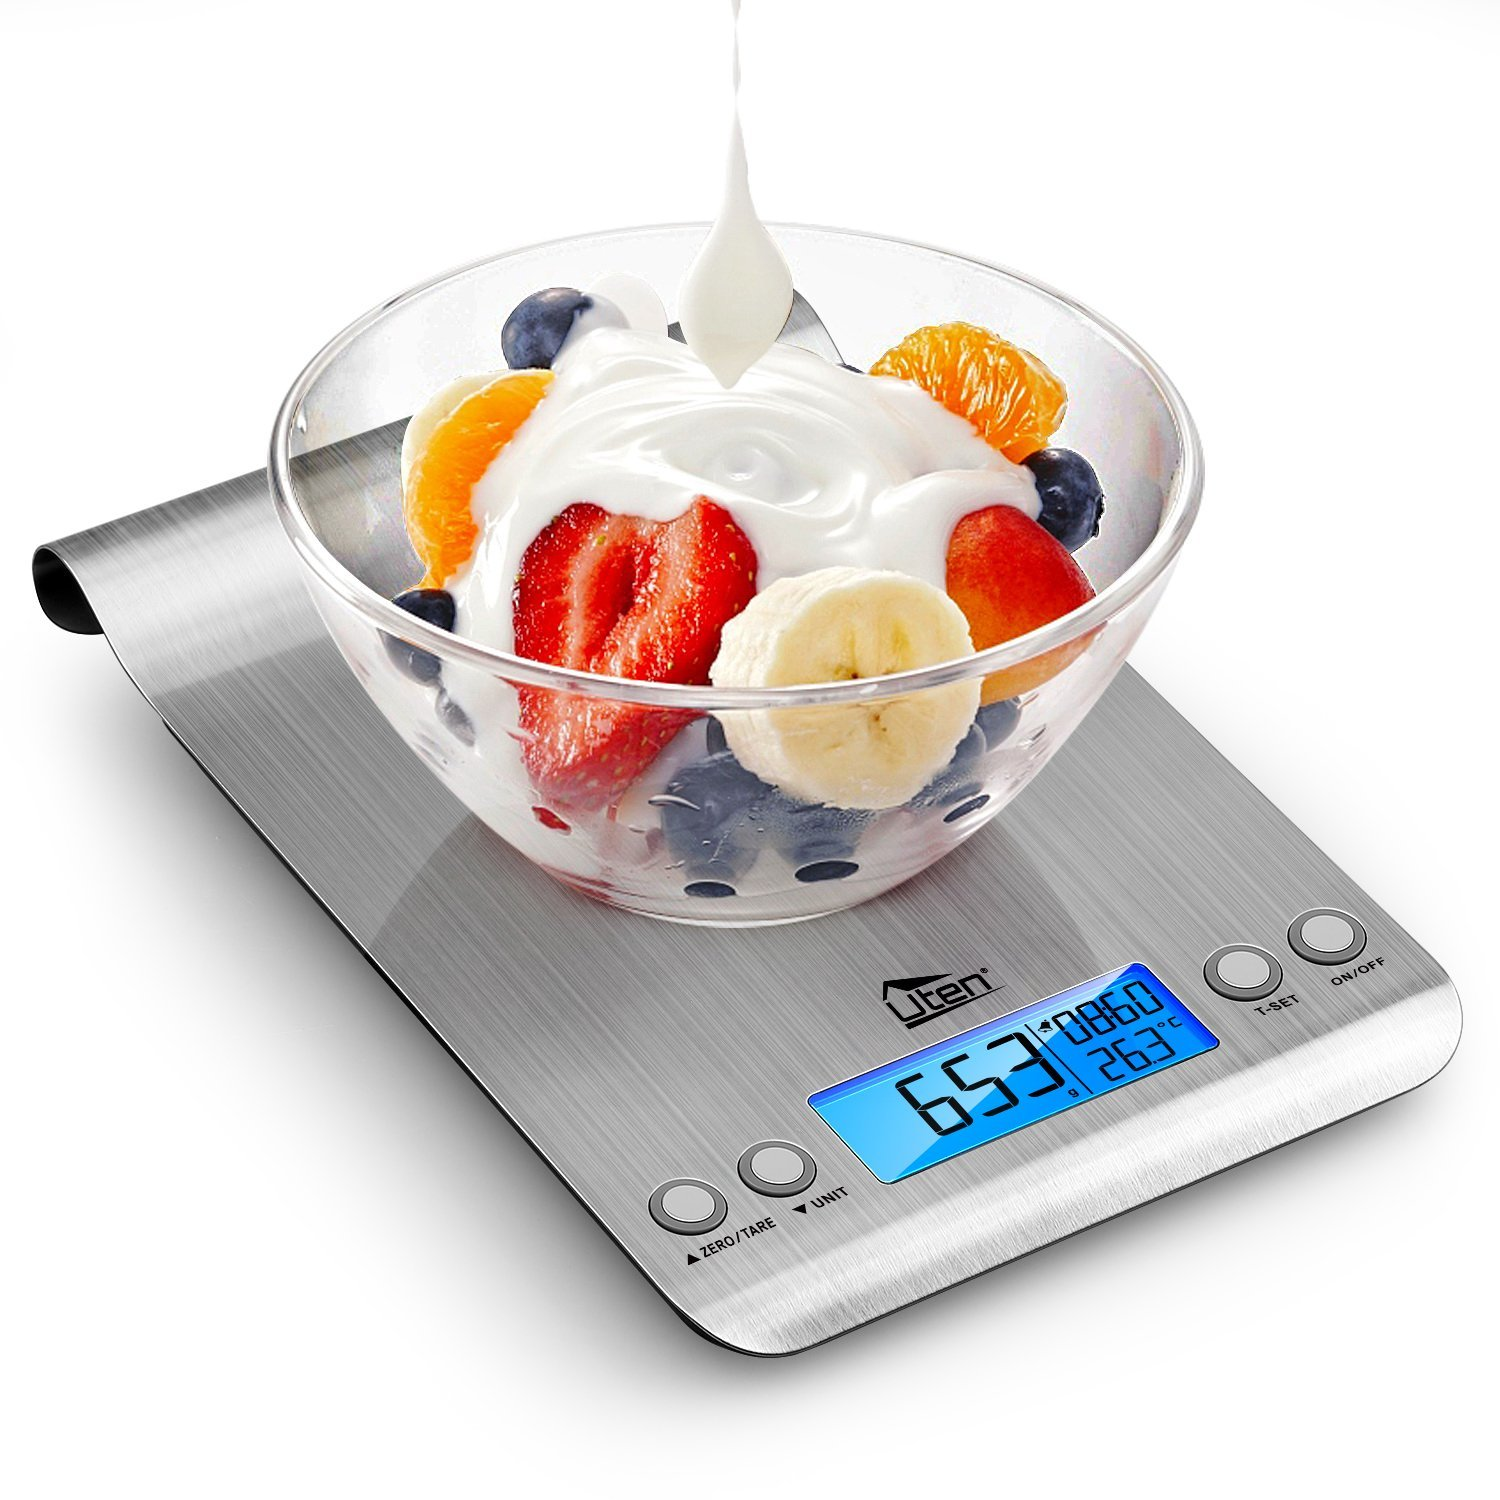 Digital Kitchen Scale Ultra Slim Multifunction Stainless Steel Hook Design Food Scale 11lb/5kg With Back-Lit LCD Display Fingerprint Resistant Coating include 2 AAA Battery